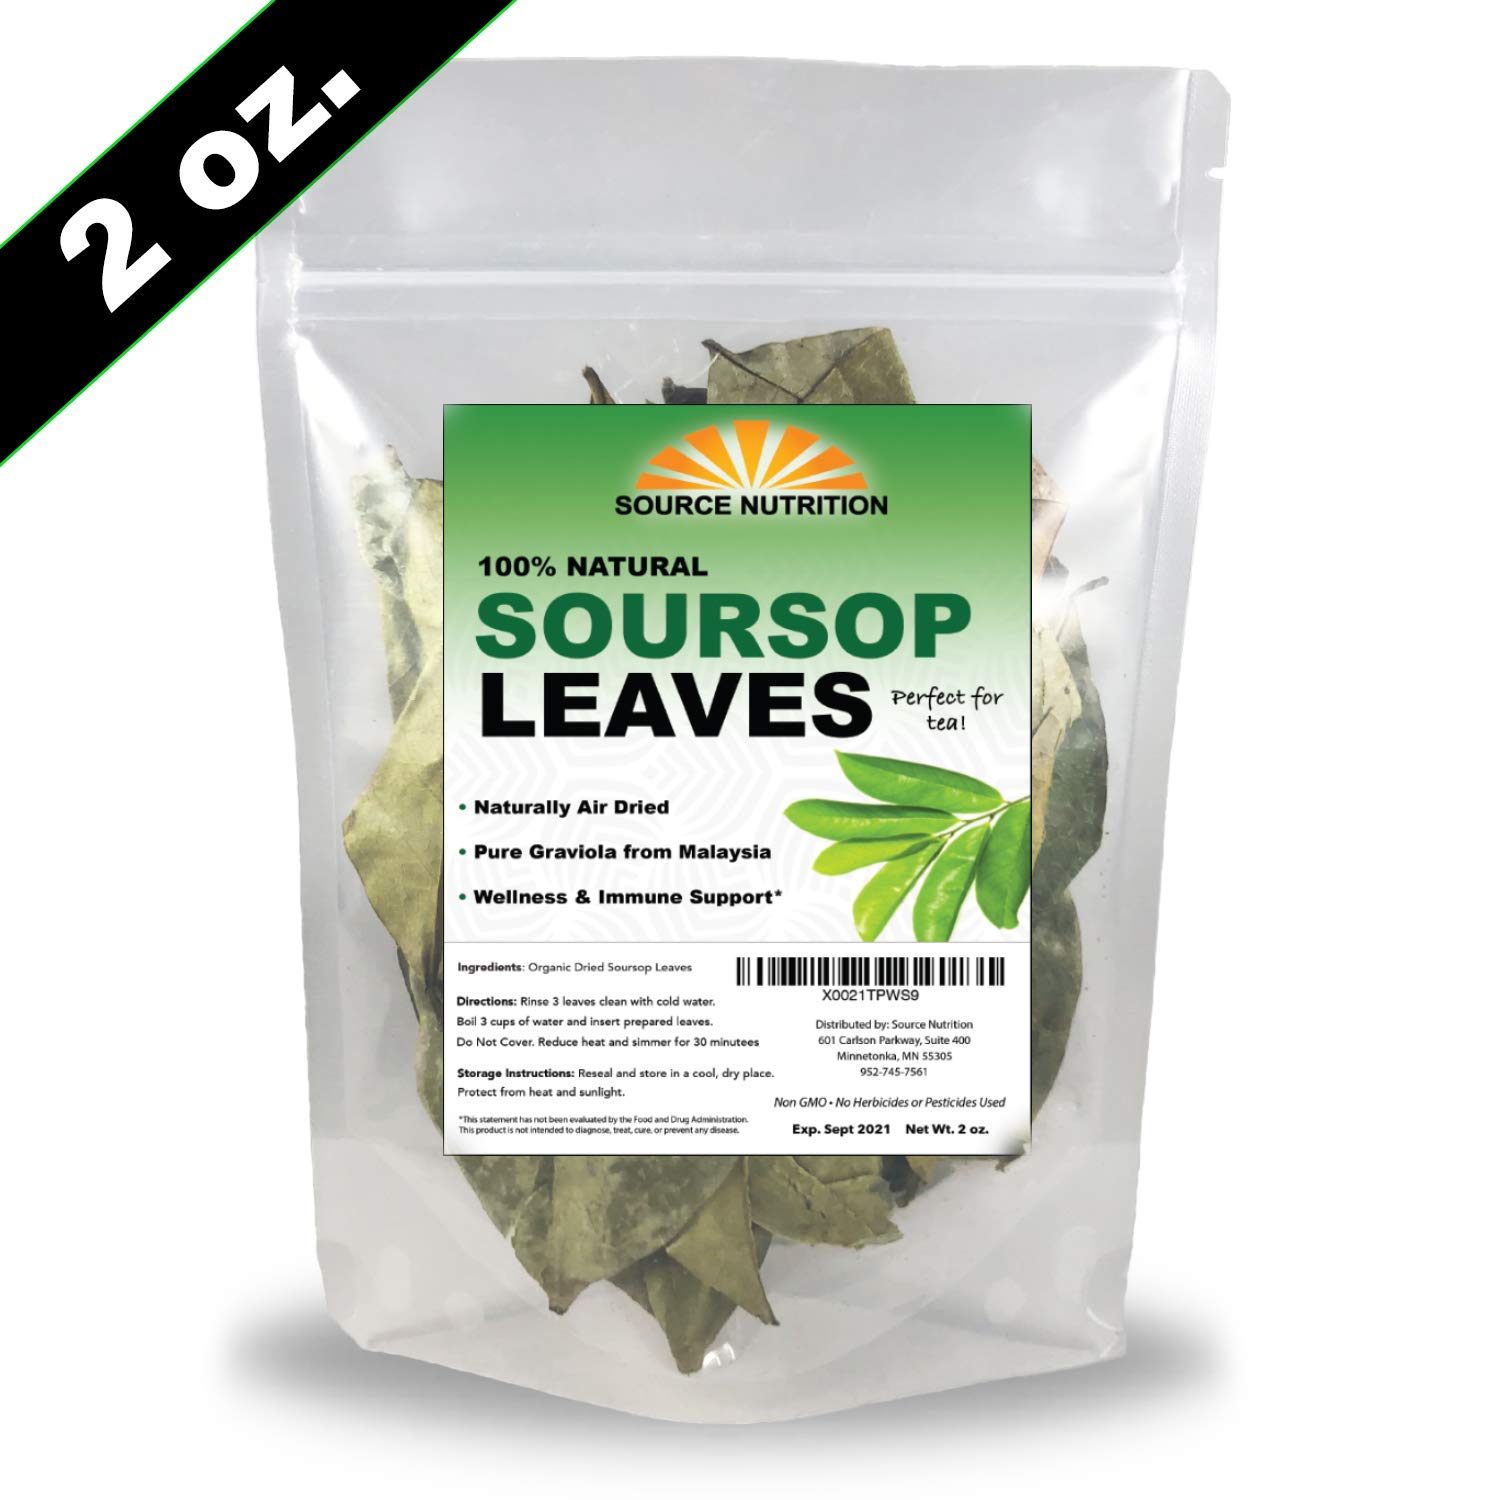 Organic Dried Soursop Leaves by Source Nutrition - Pure Graviola for Tea, Whole Dried Leaves, High in Acetogenins - 2 oz Resealable Bag